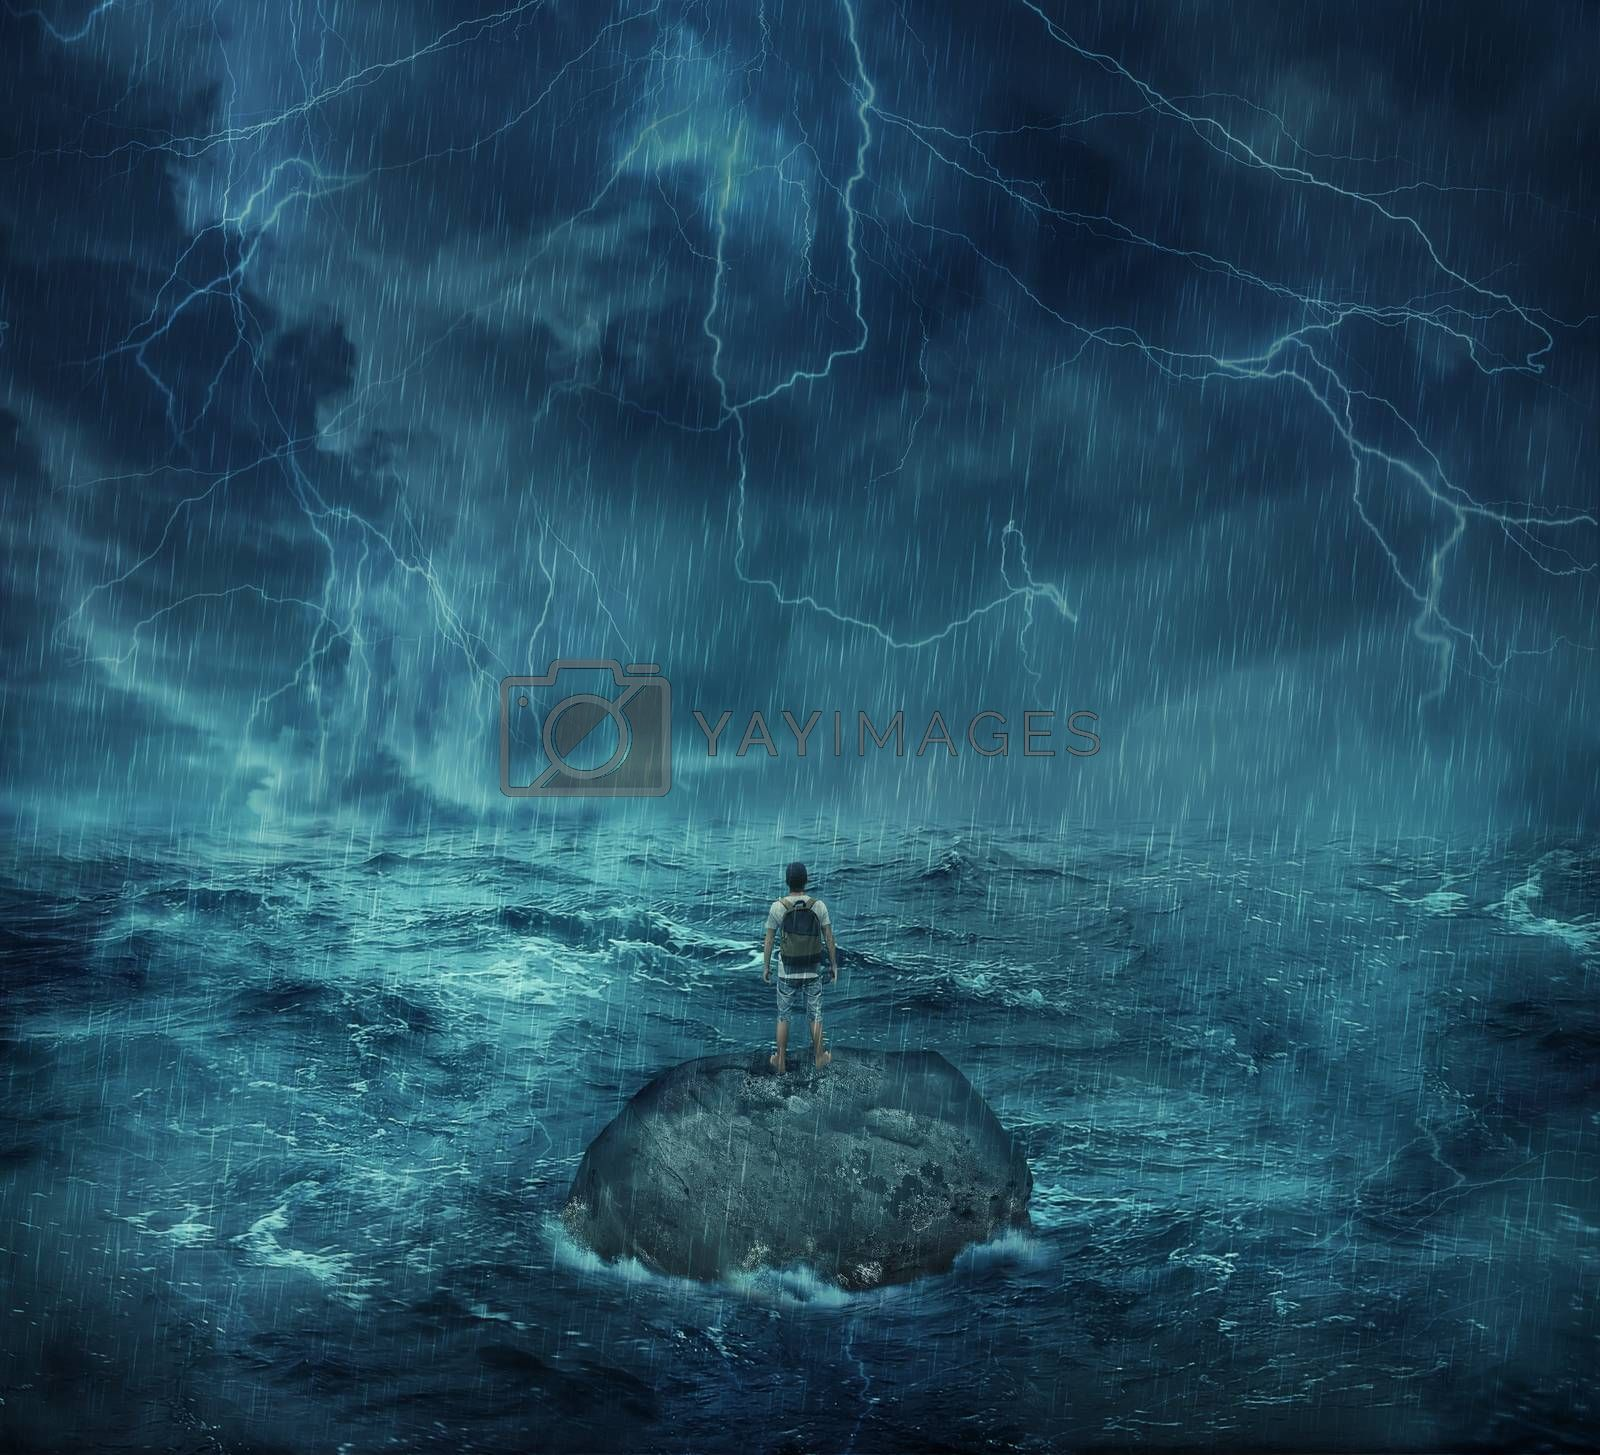 Lost man standing abandoned on a rock island in middle of the ocean, in a stormy night with lightnings in the sky. Looking for help, trying to survive. Adventure, journey and hard determination concept.